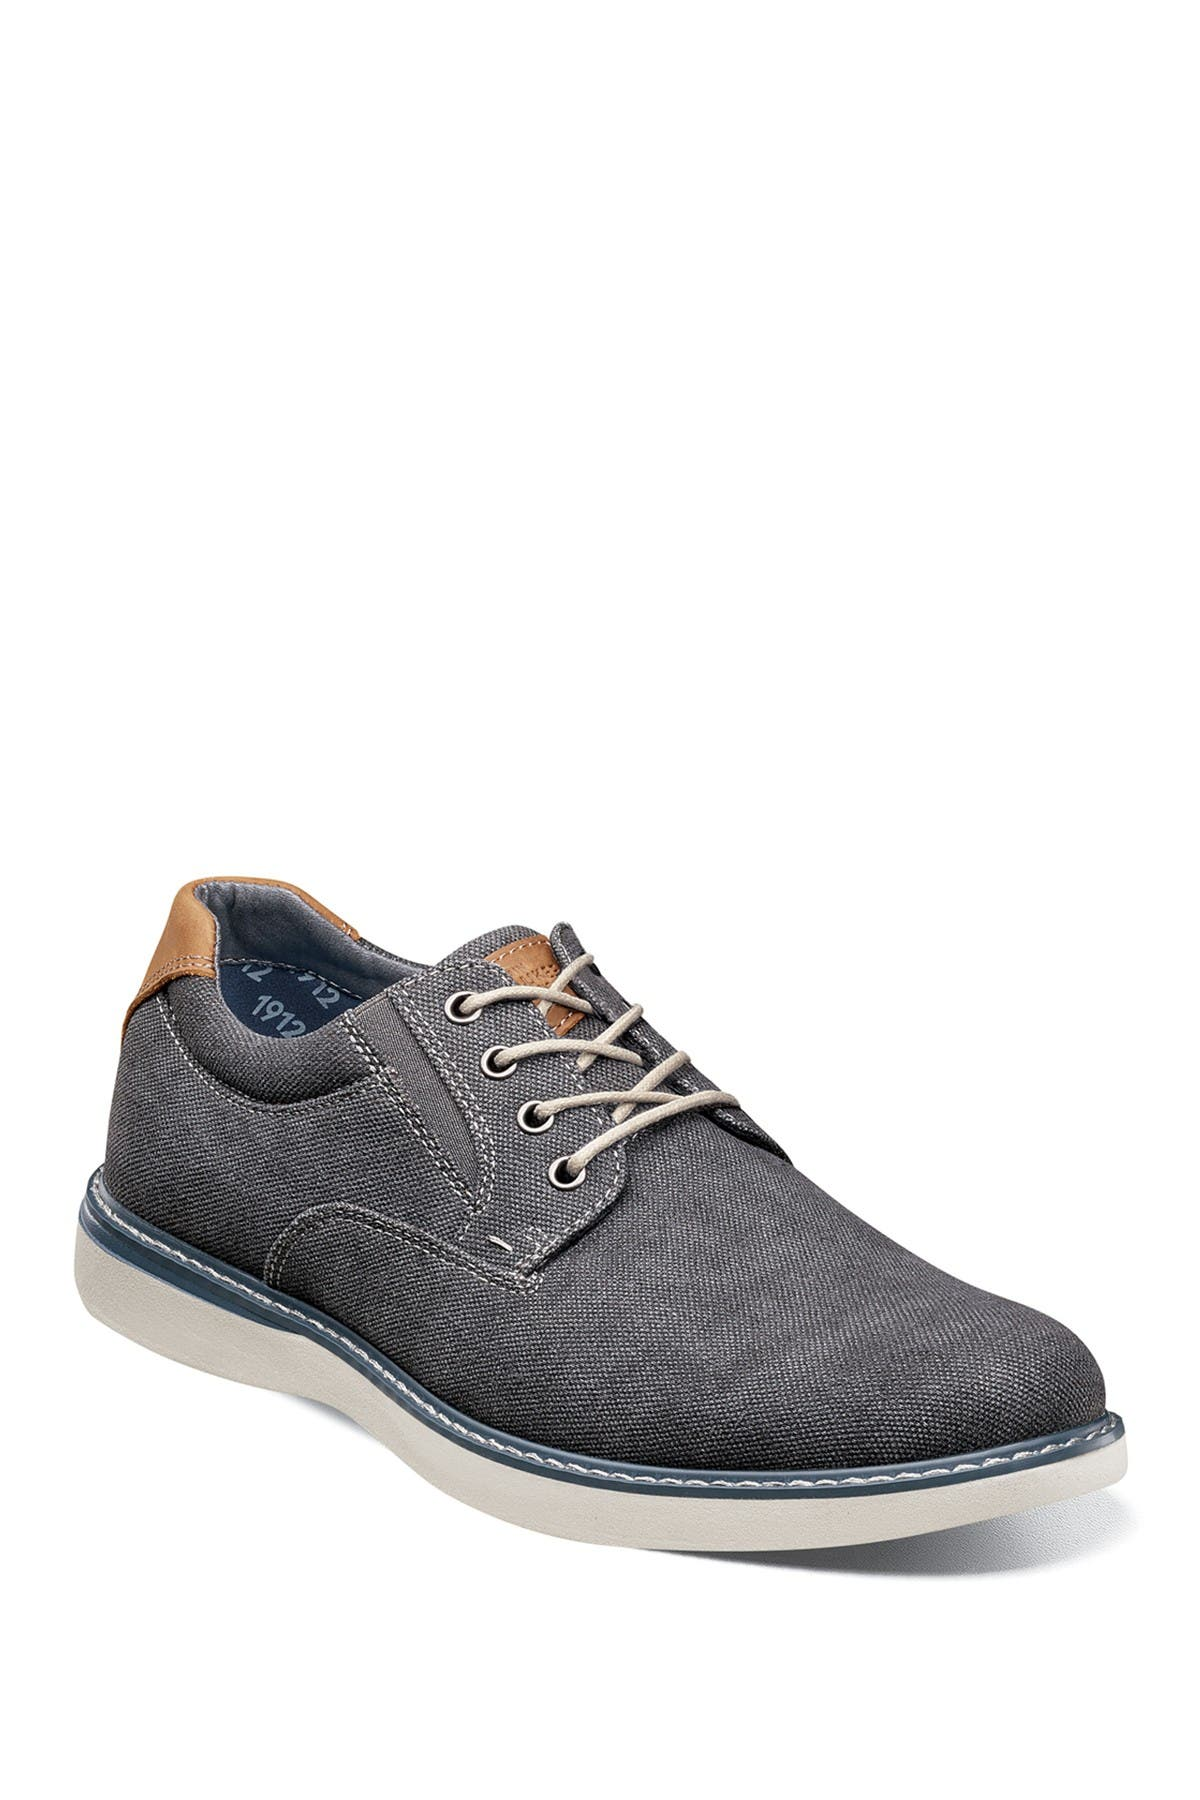 Image of NUNN BUSH Bayridge Canvas Oxford Sneaker - Wide Width Available